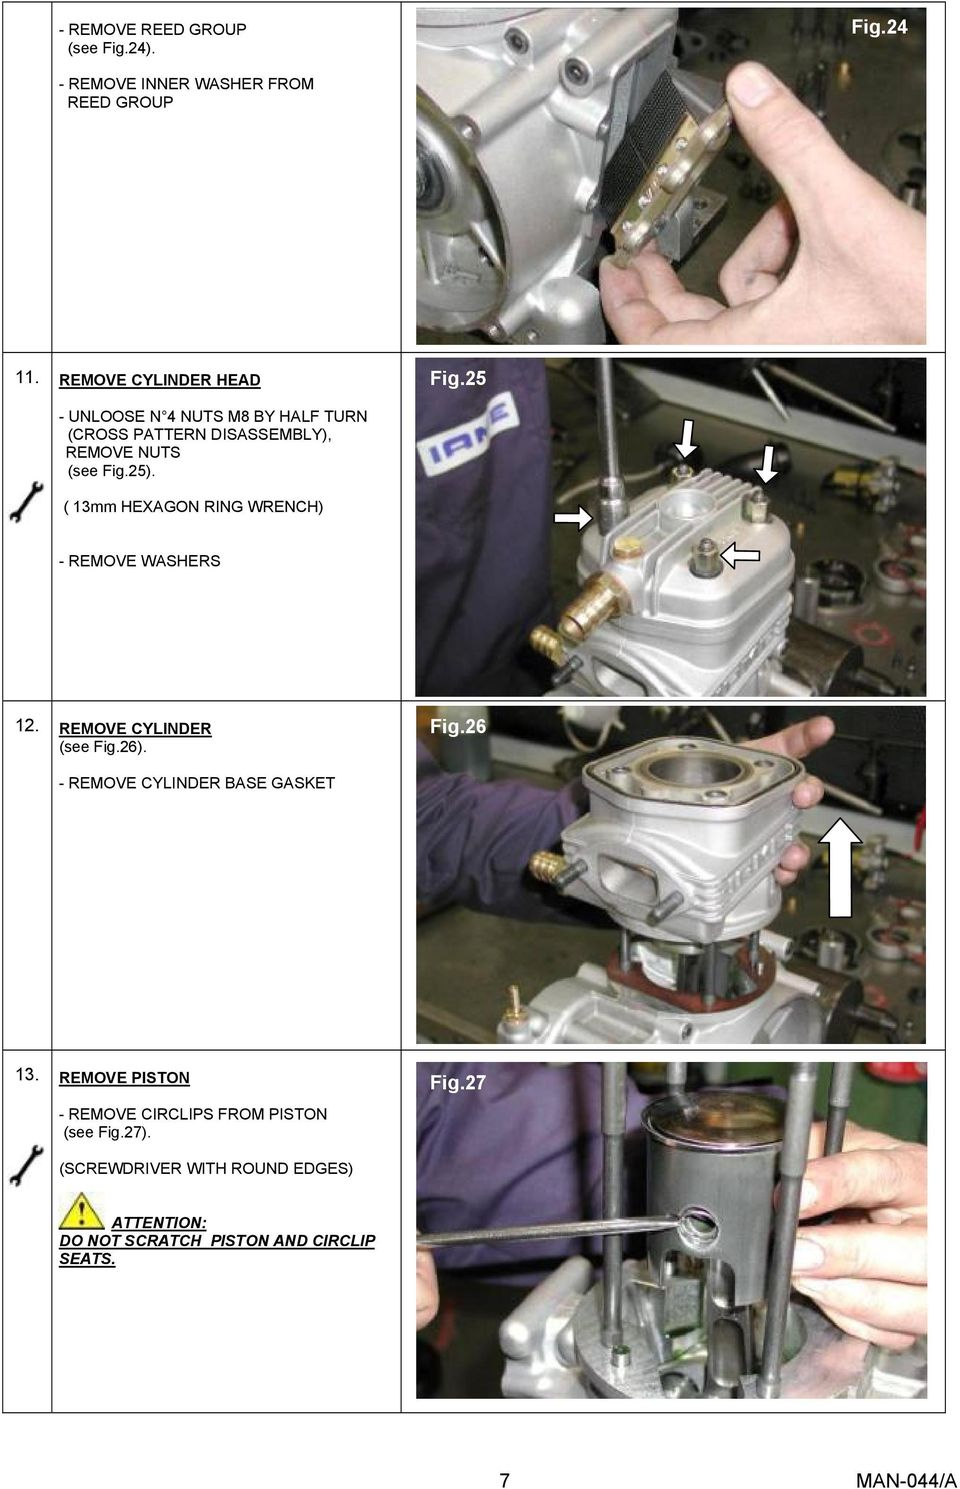 ( 13mm HEXAGON RING WRENCH) - REMOVE WASHERS 12. REMOVE CYLINDER (see Fig.26). Fig.26 - REMOVE CYLINDER BASE GASKET 13.